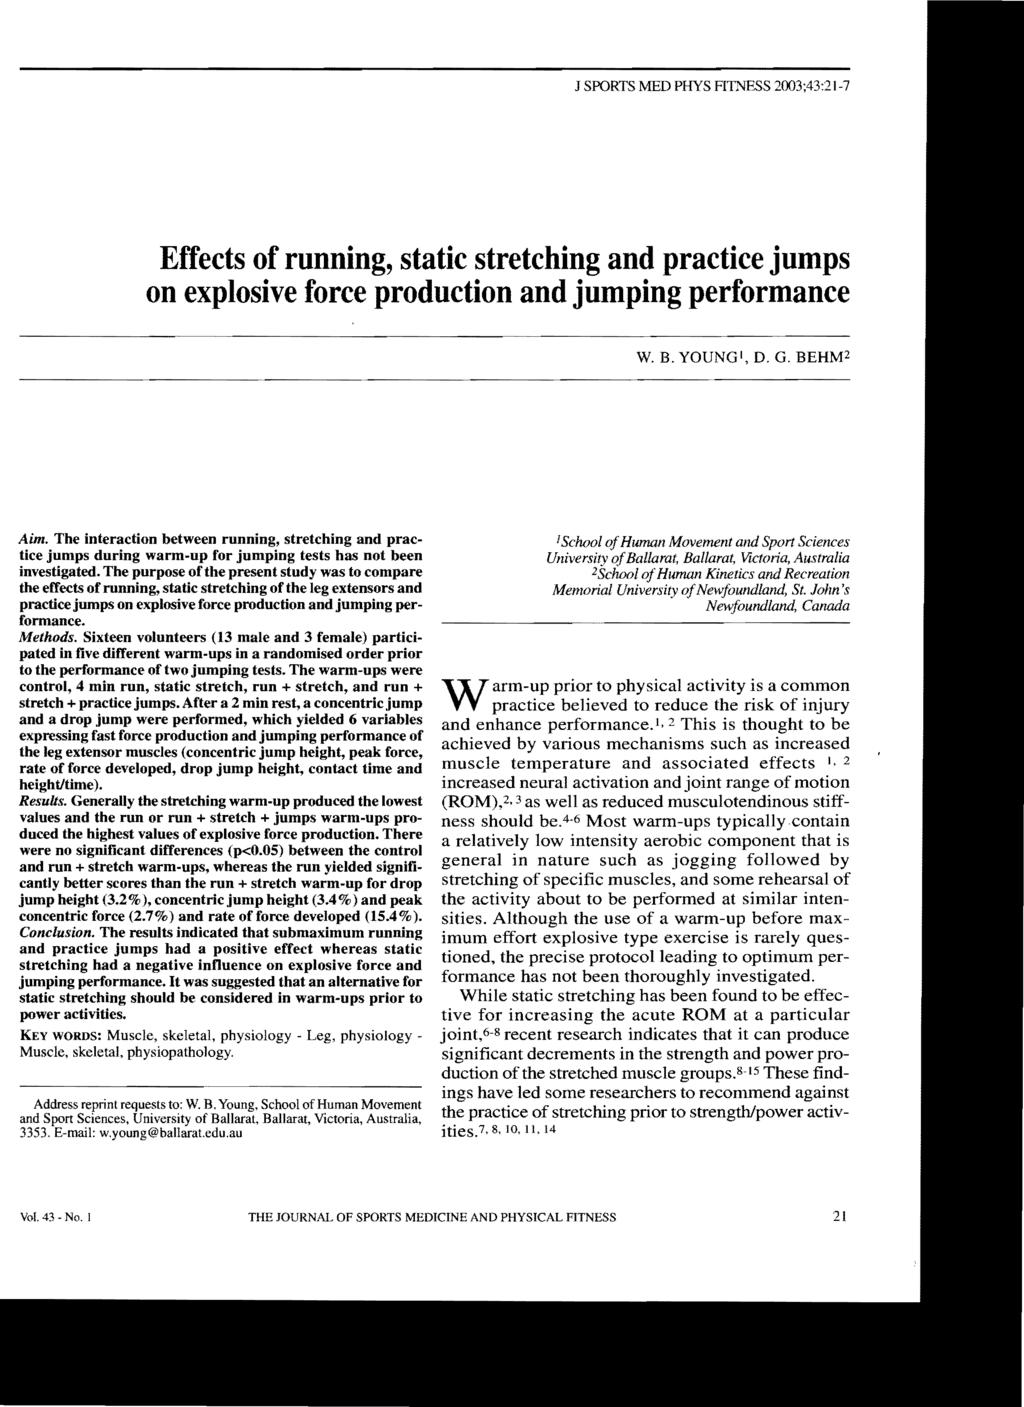 J SPORTS MED PHYS FITNESS 2003;43:21-7 Effects of running, static stretching and practice jumps on explosive force production and jumping performance W. B. YOUNGI, D. G. BEHM2 Aim.